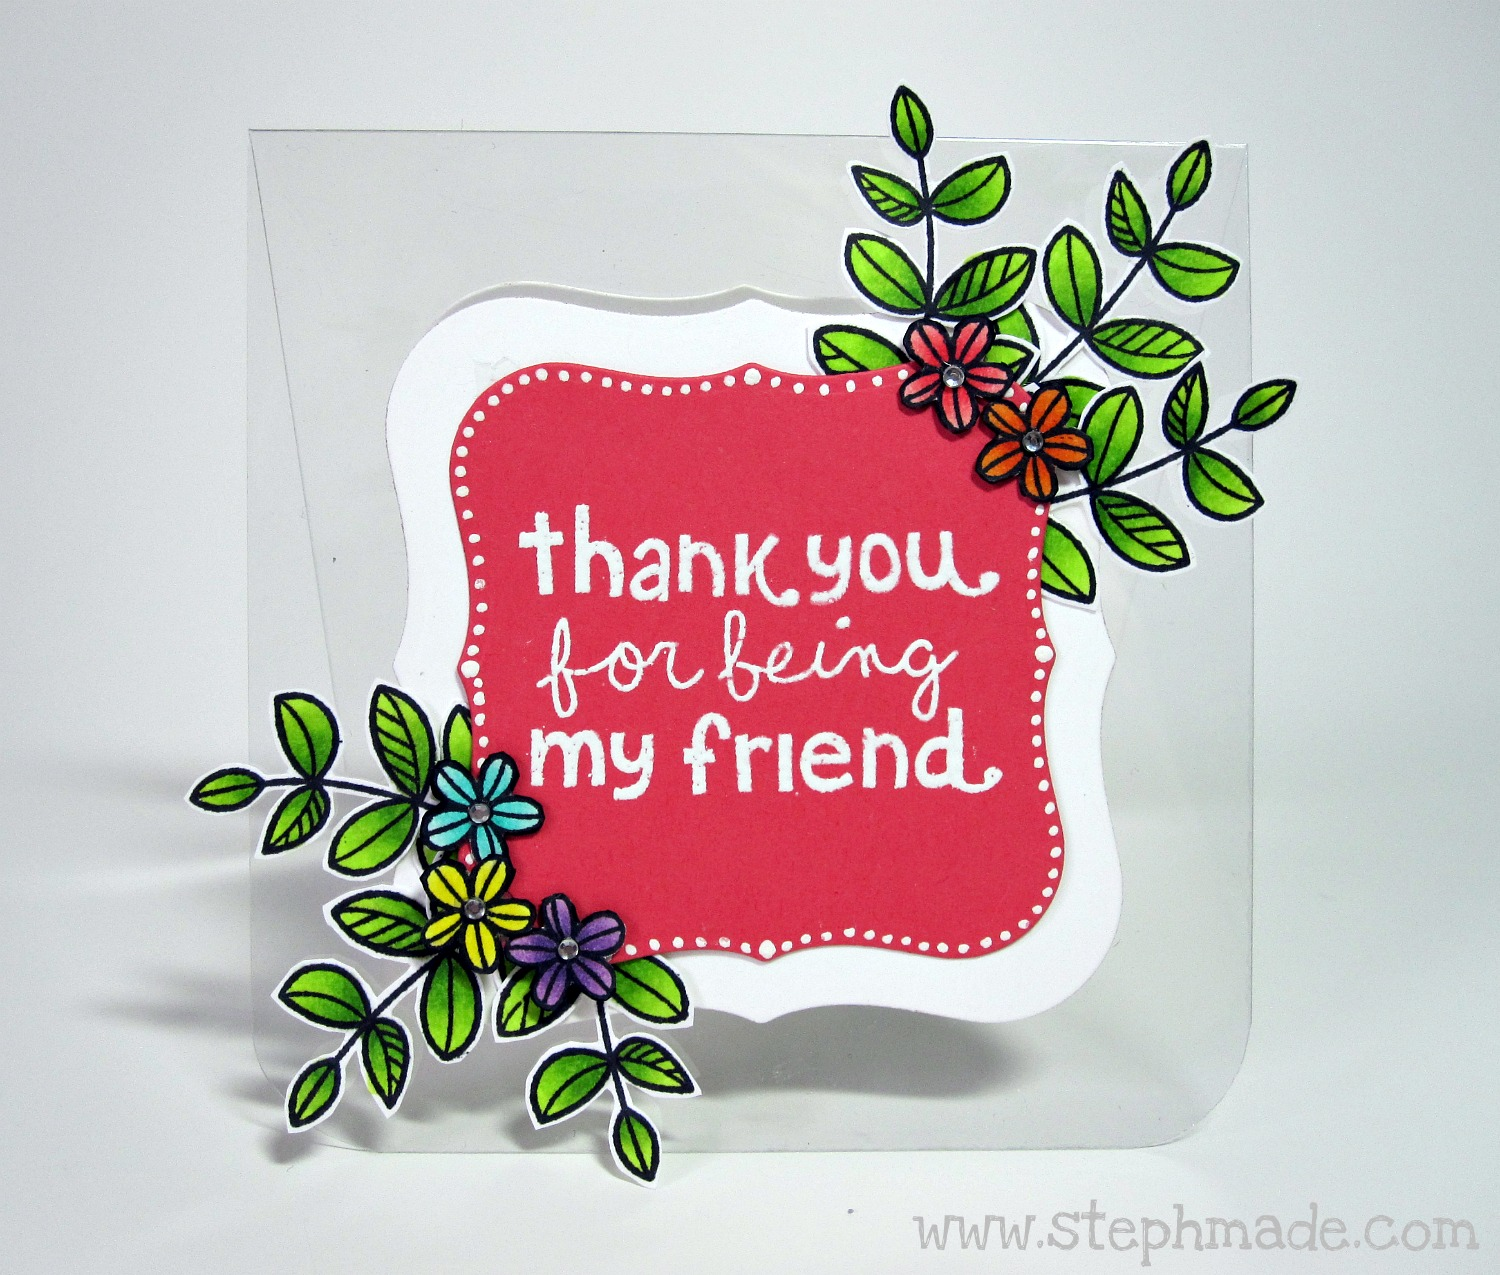 Captivating Friends Quotes Thank You For My Az : Thank You For Being My Friend Quotes  Quotesgram